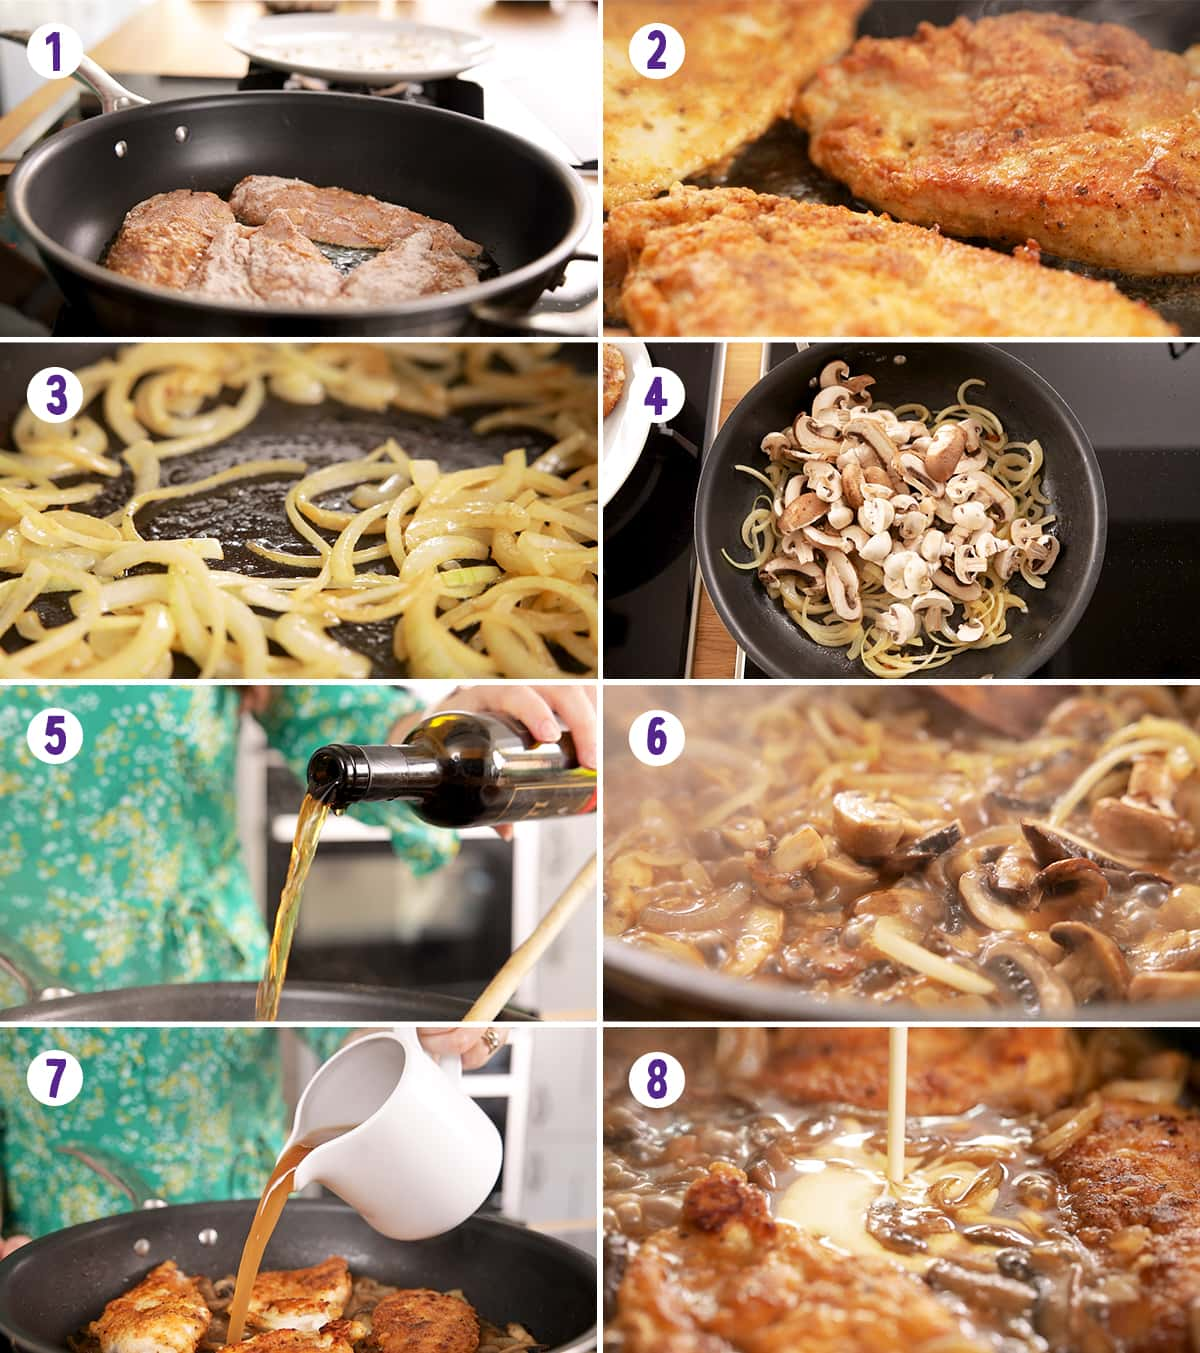 8 image collage showing how to make chicken marsala